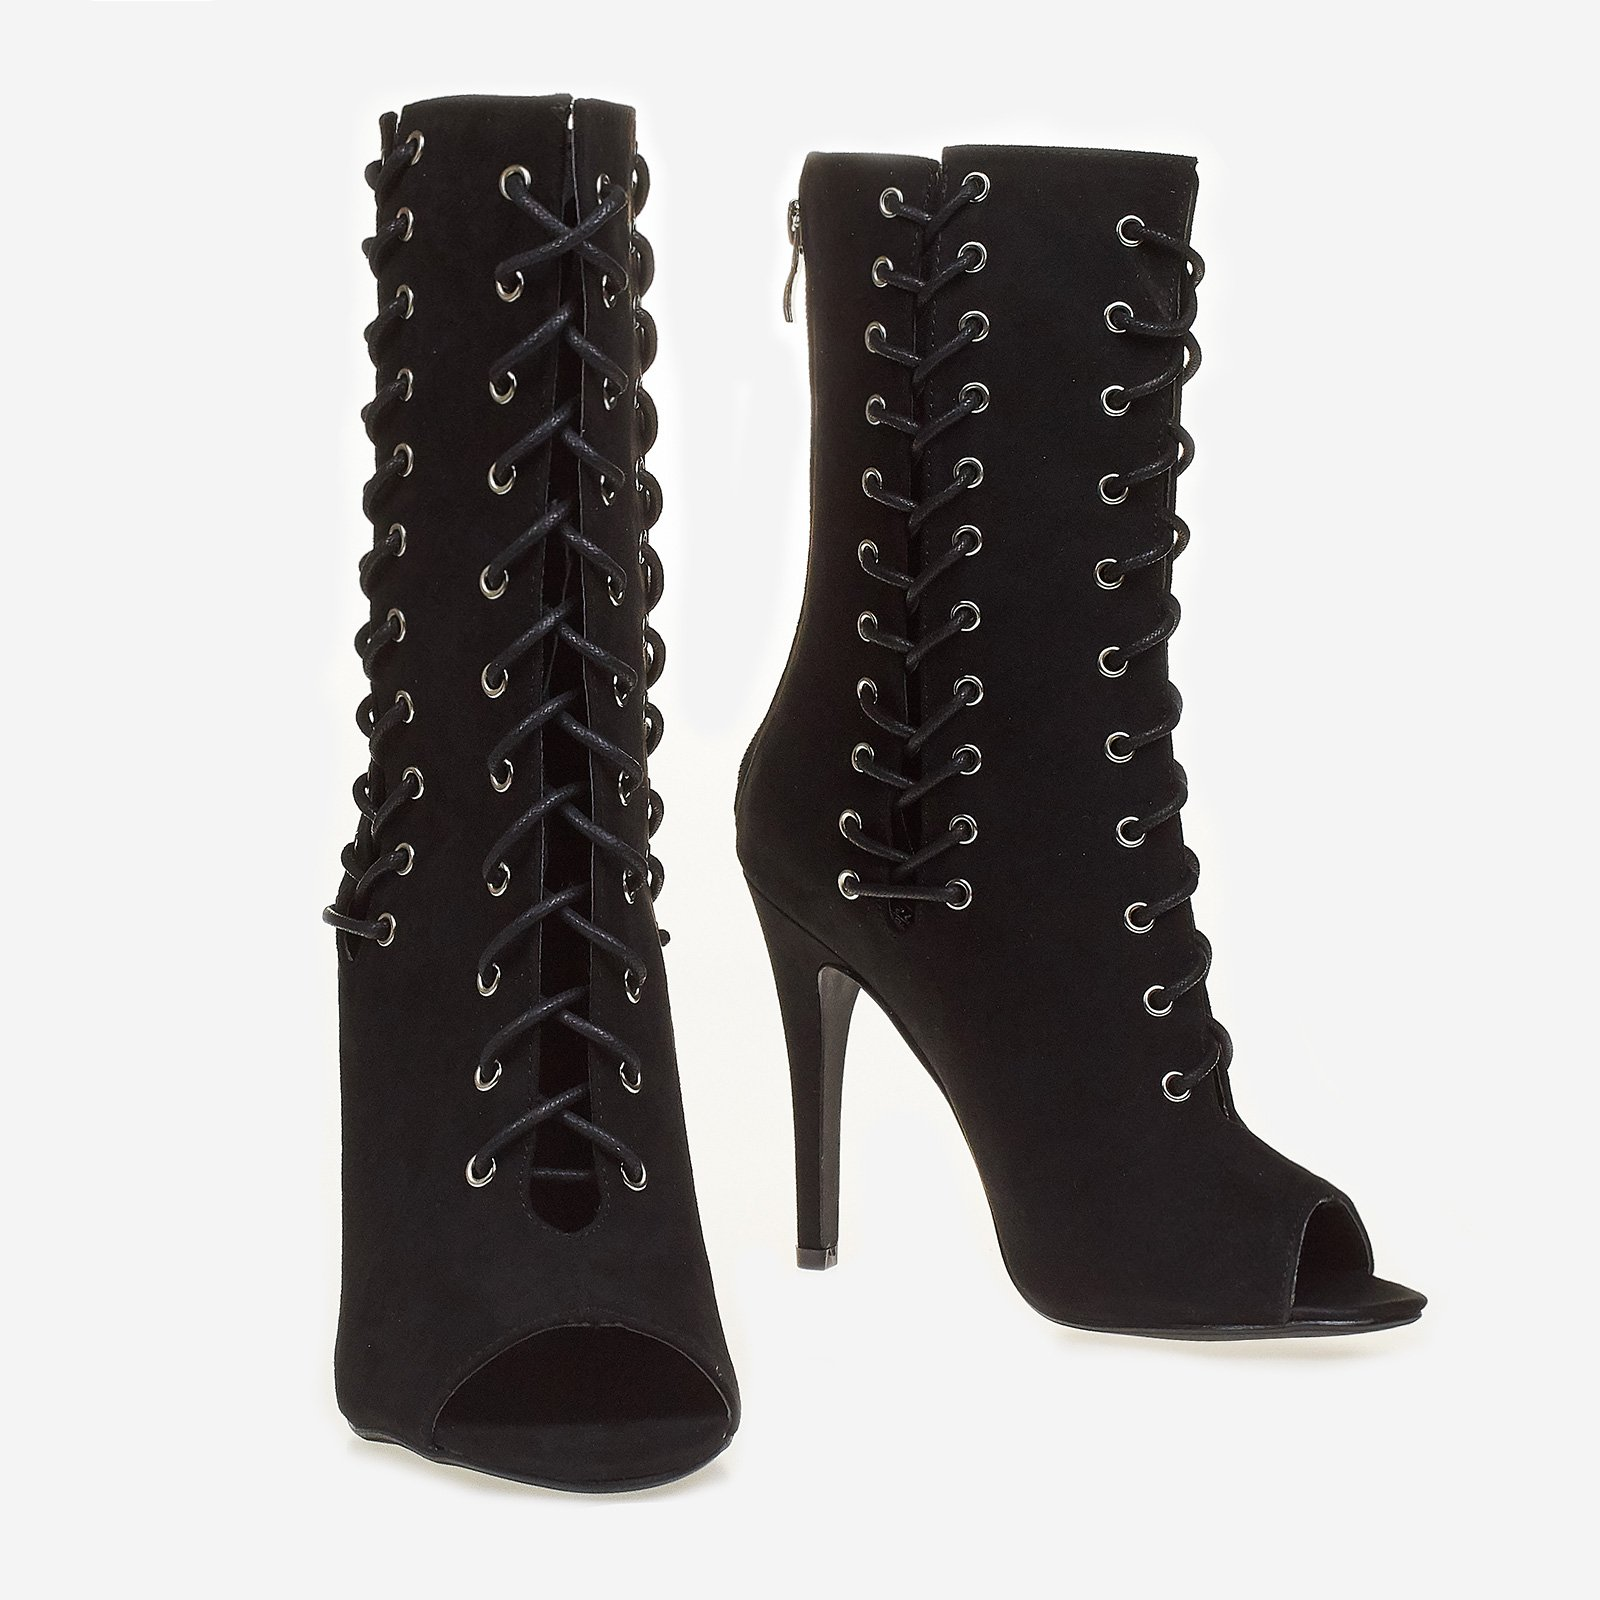 Addicted Lace Up Peep Toe Ankle Boot In Black